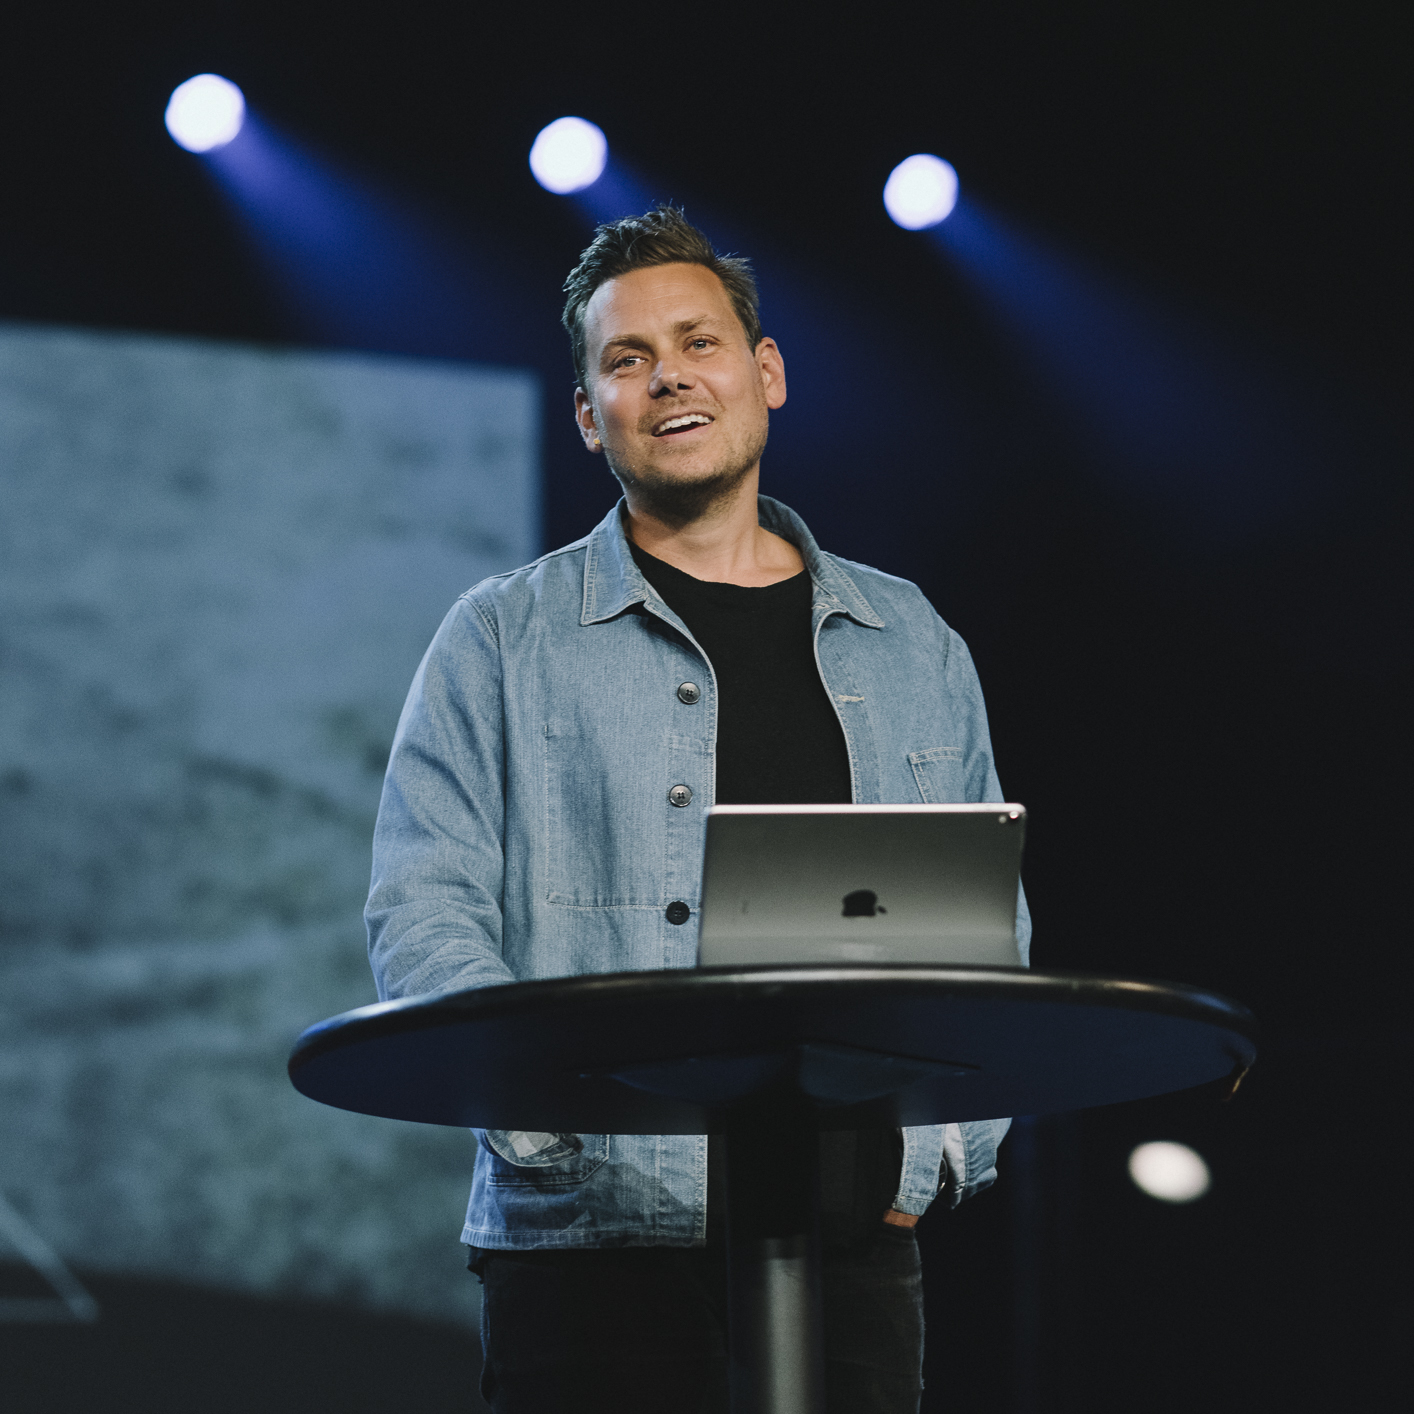 John Mark Comer speaking at Dwell Conference 2019.